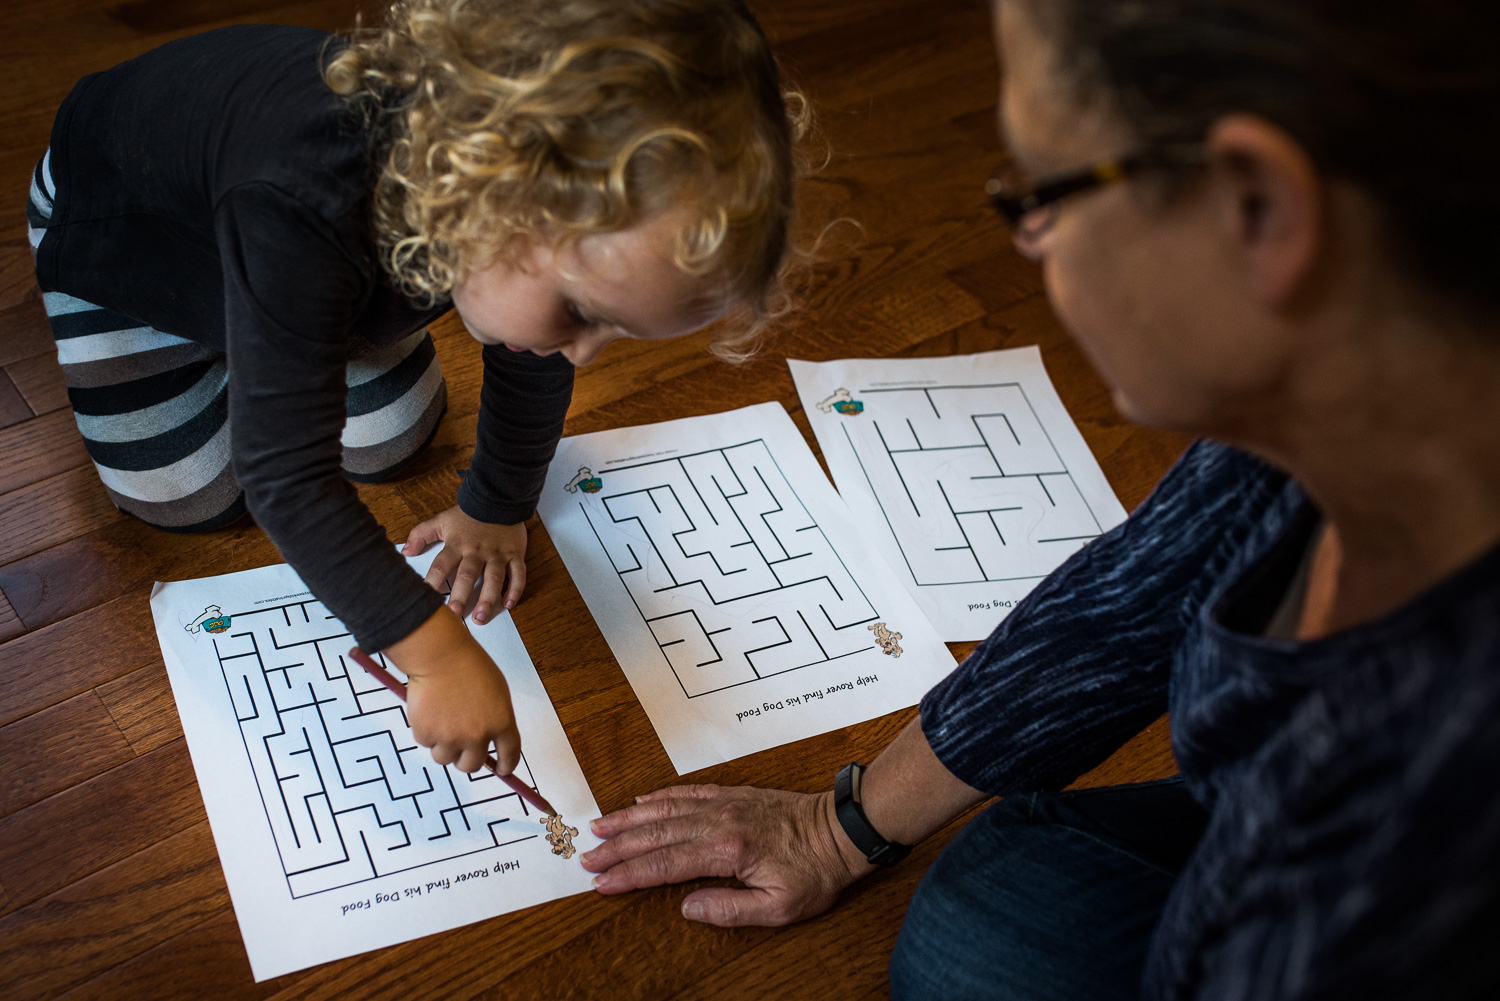 Toddler girl with curly hair sitting on the floor with her grandma working on mazes printed out on white paper